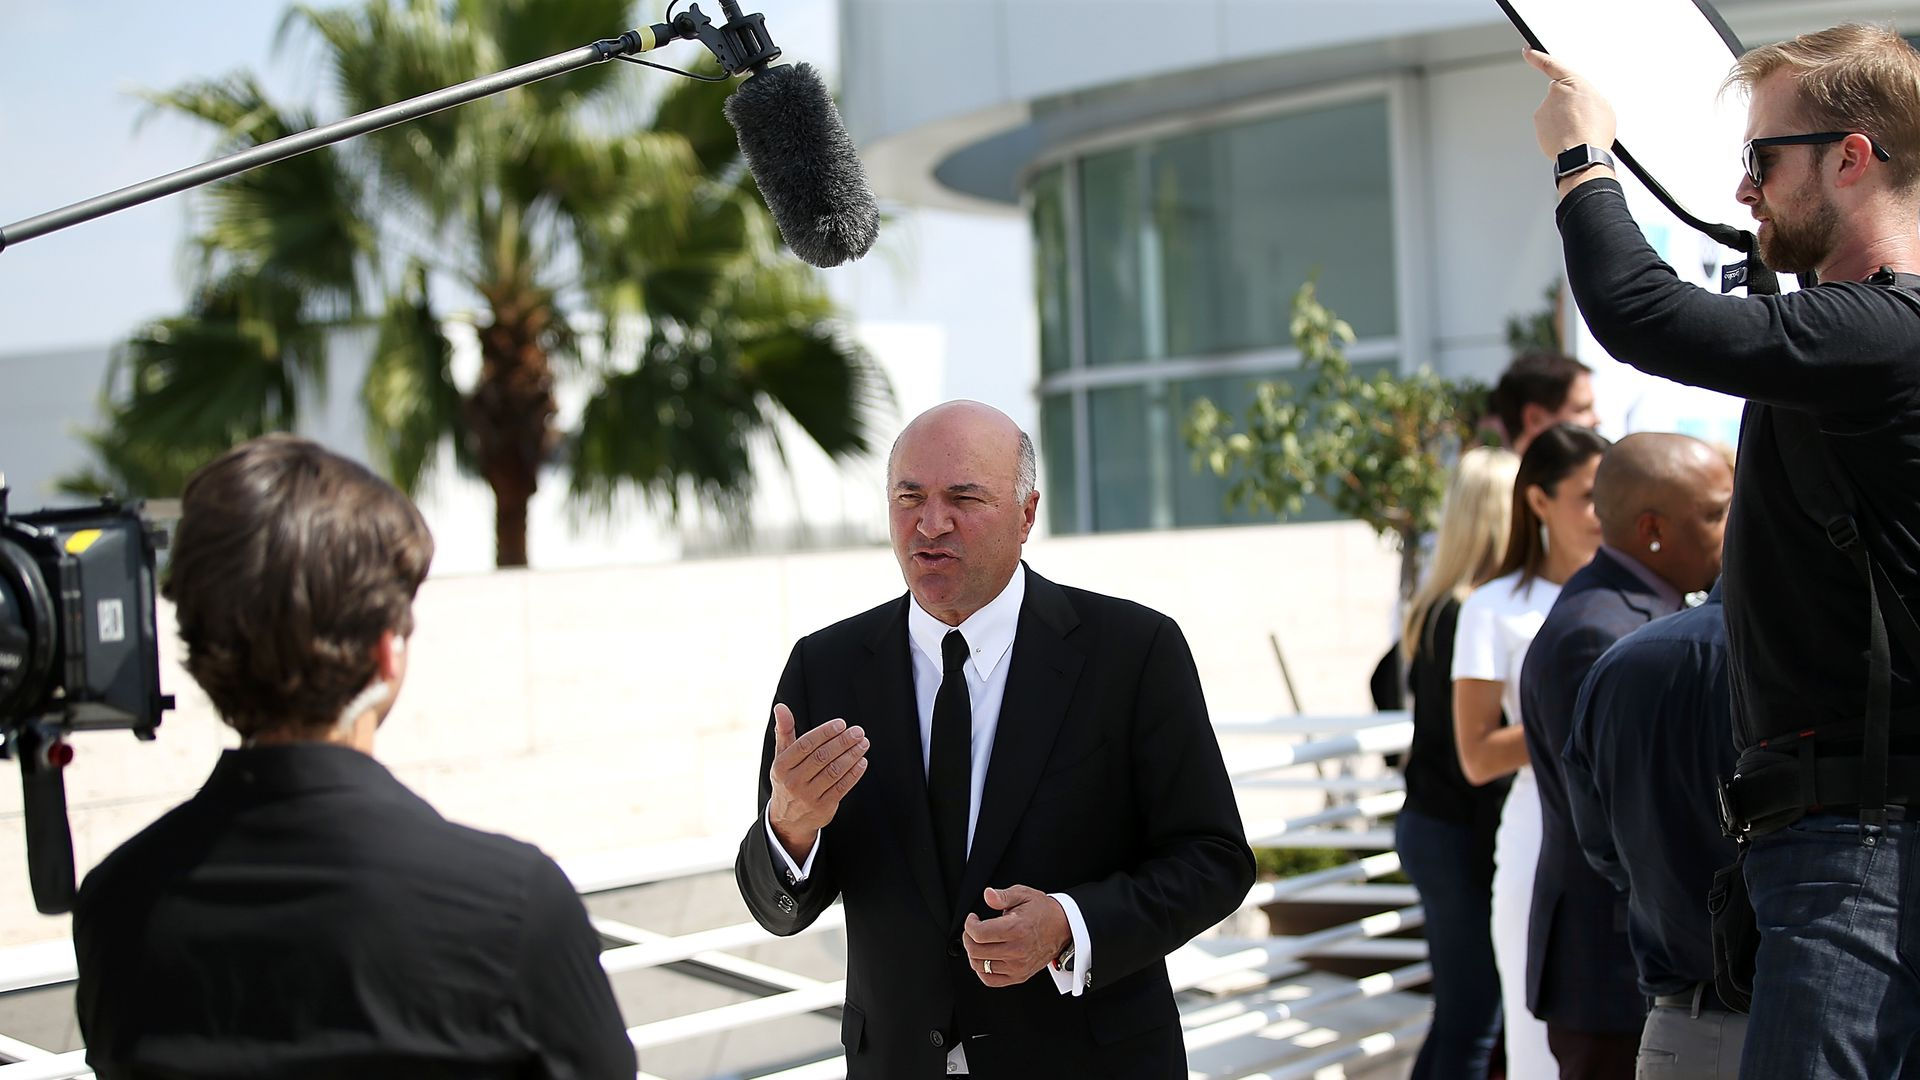 Shark Tank host Kevin O'Leary